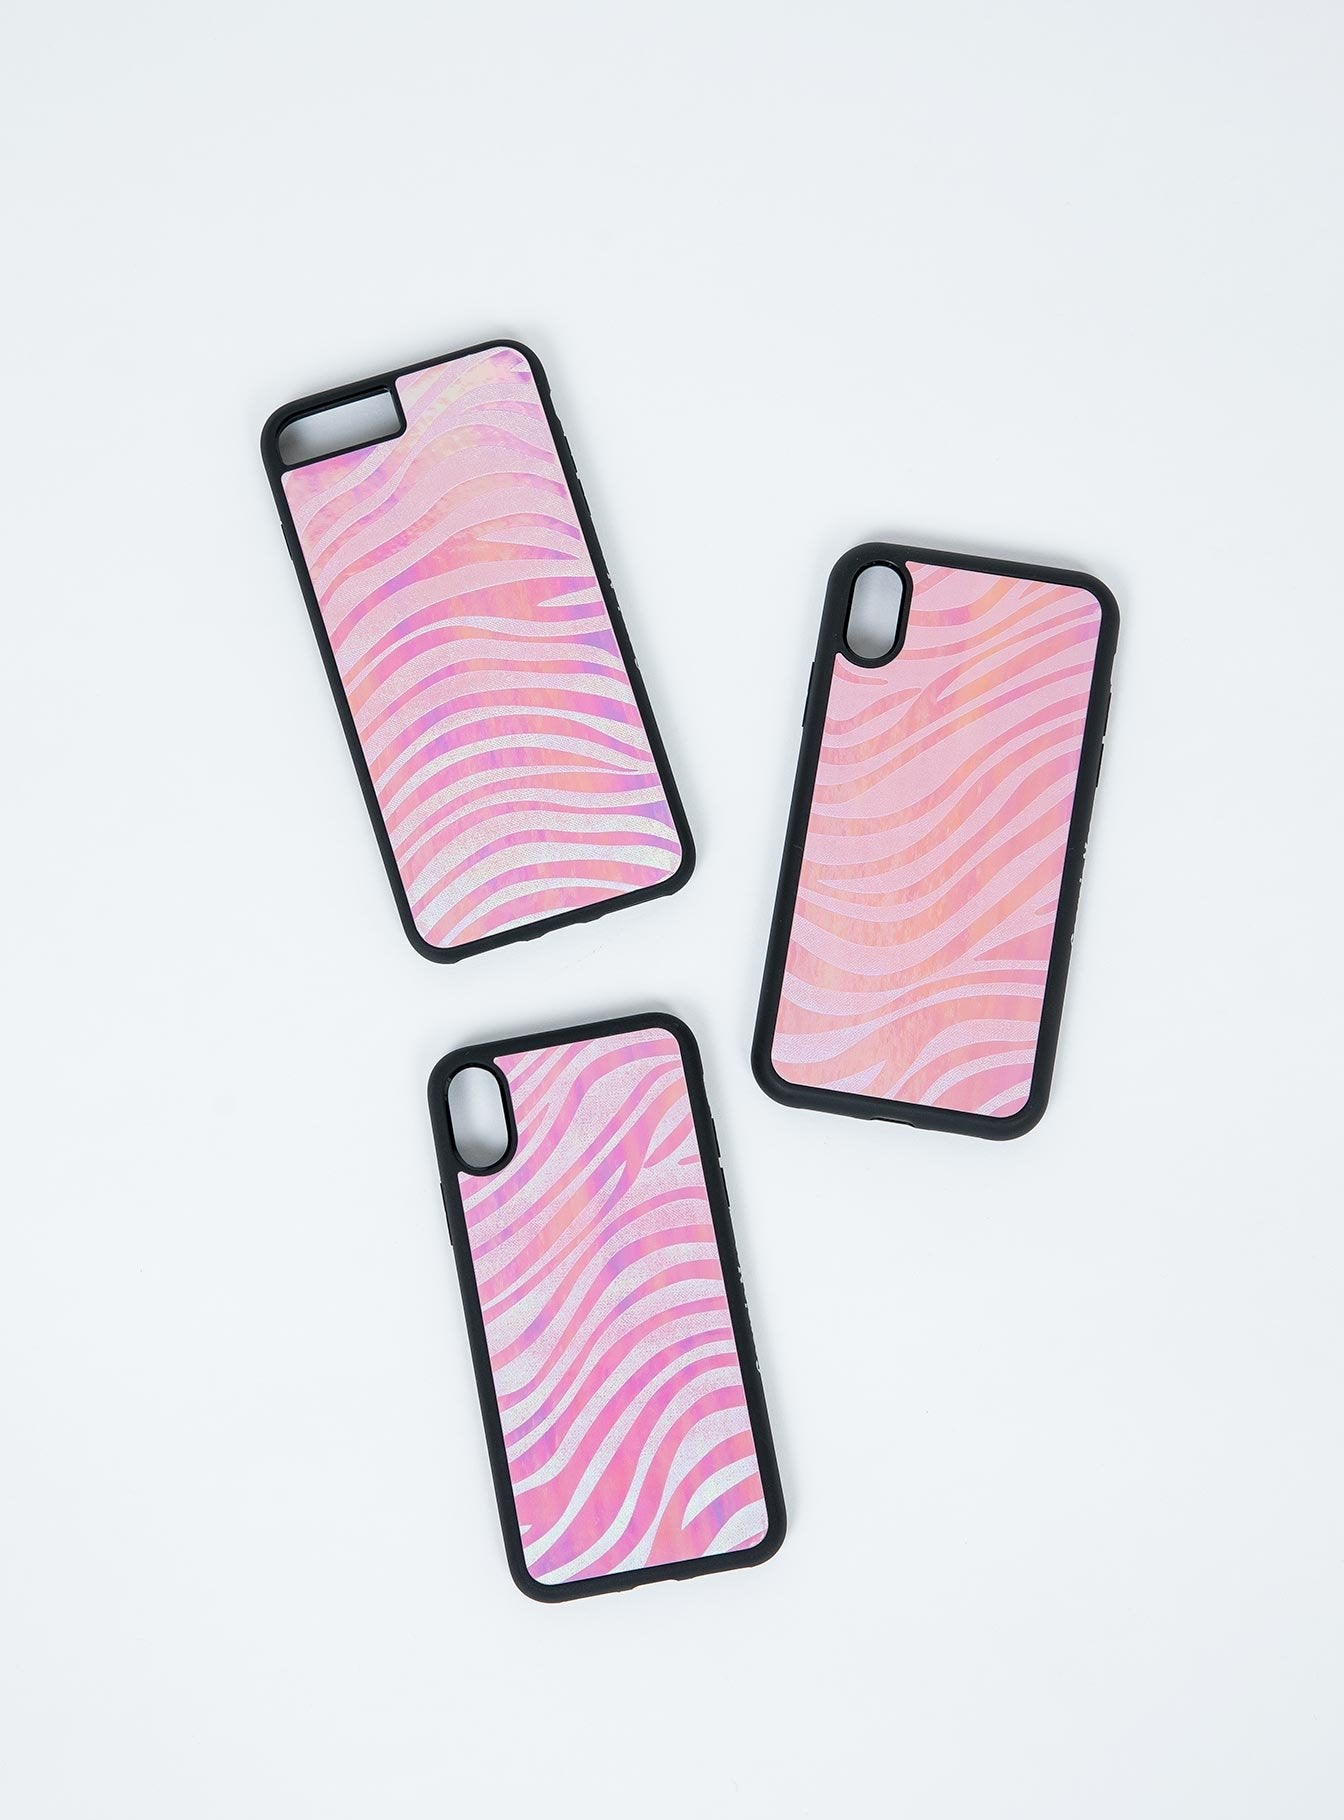 georgia-mae-iridescent-tiger-phone-cover by georgia-mae